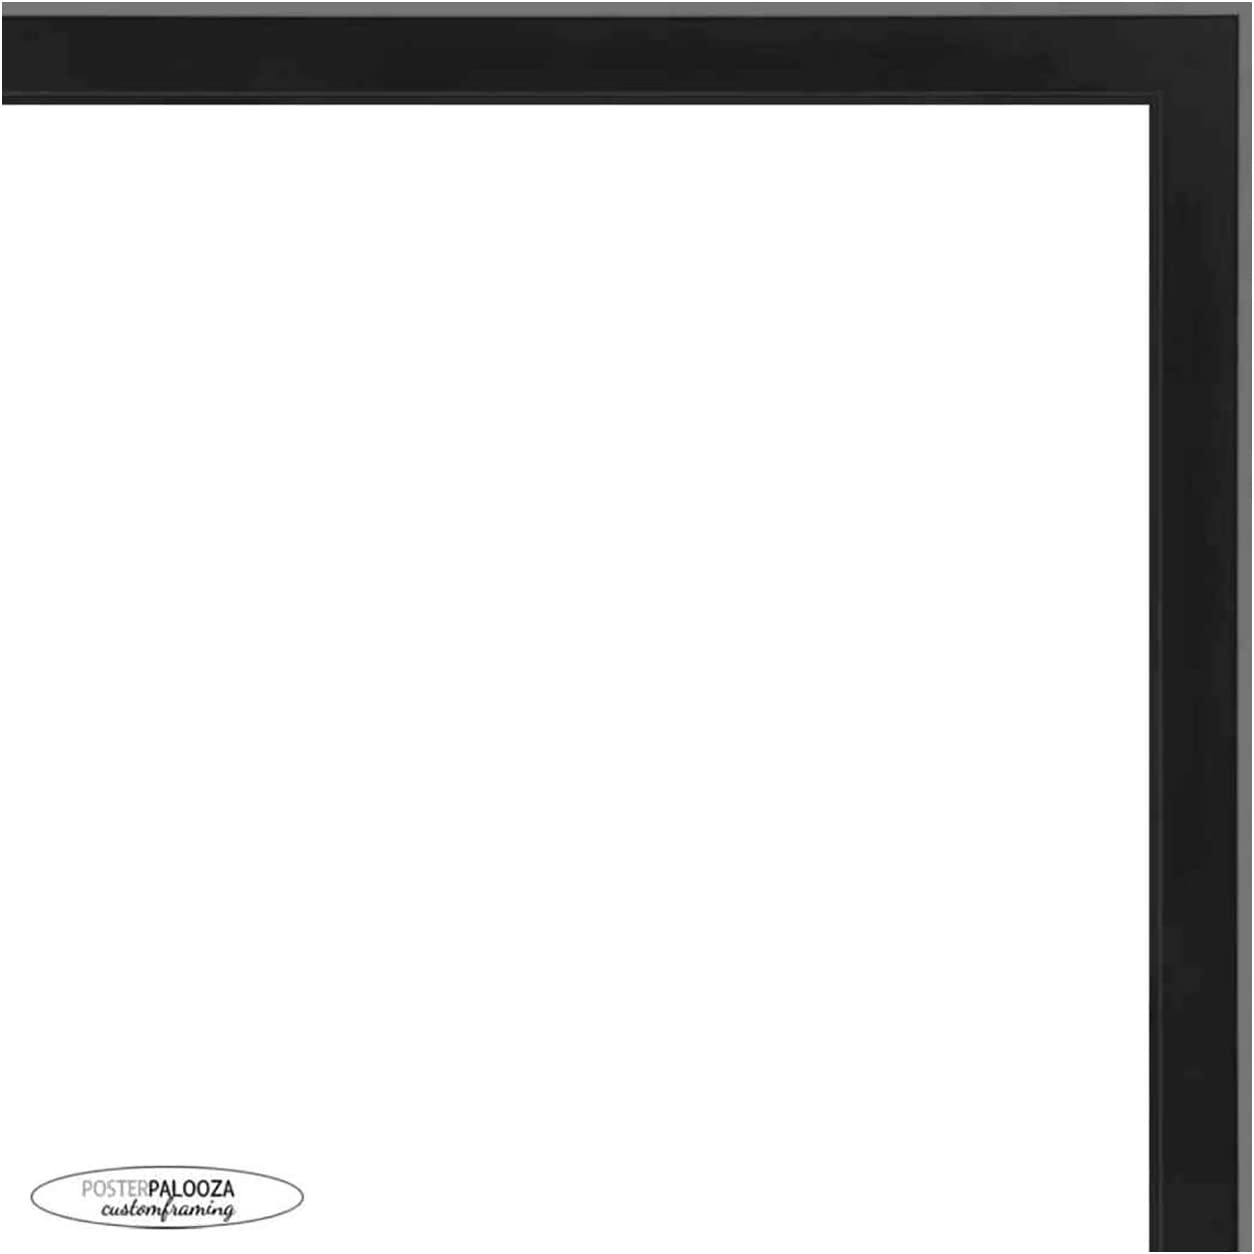 Poster Bargain Palooza 36x28 Contemporary Max 66% OFF Black Wood Fr Complete Picture